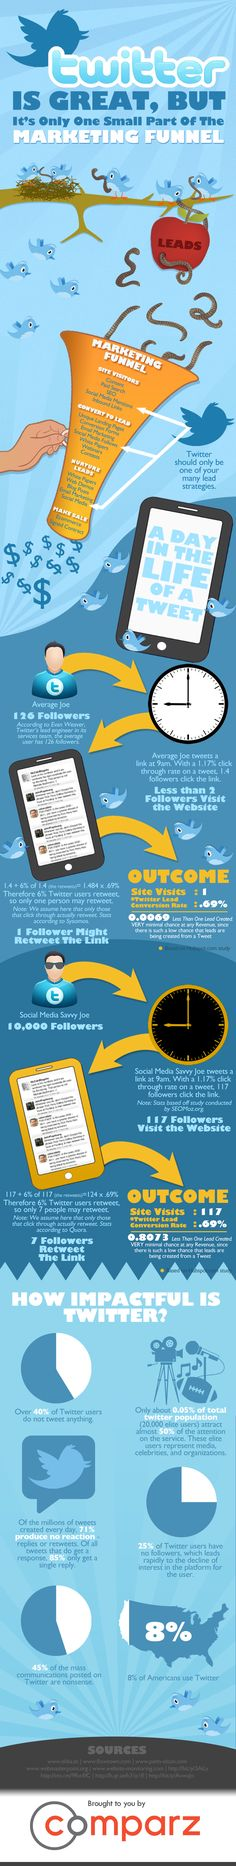 While Twitter is a brilliant tool, it should not be the entirety of your marketing strategy. #infographic